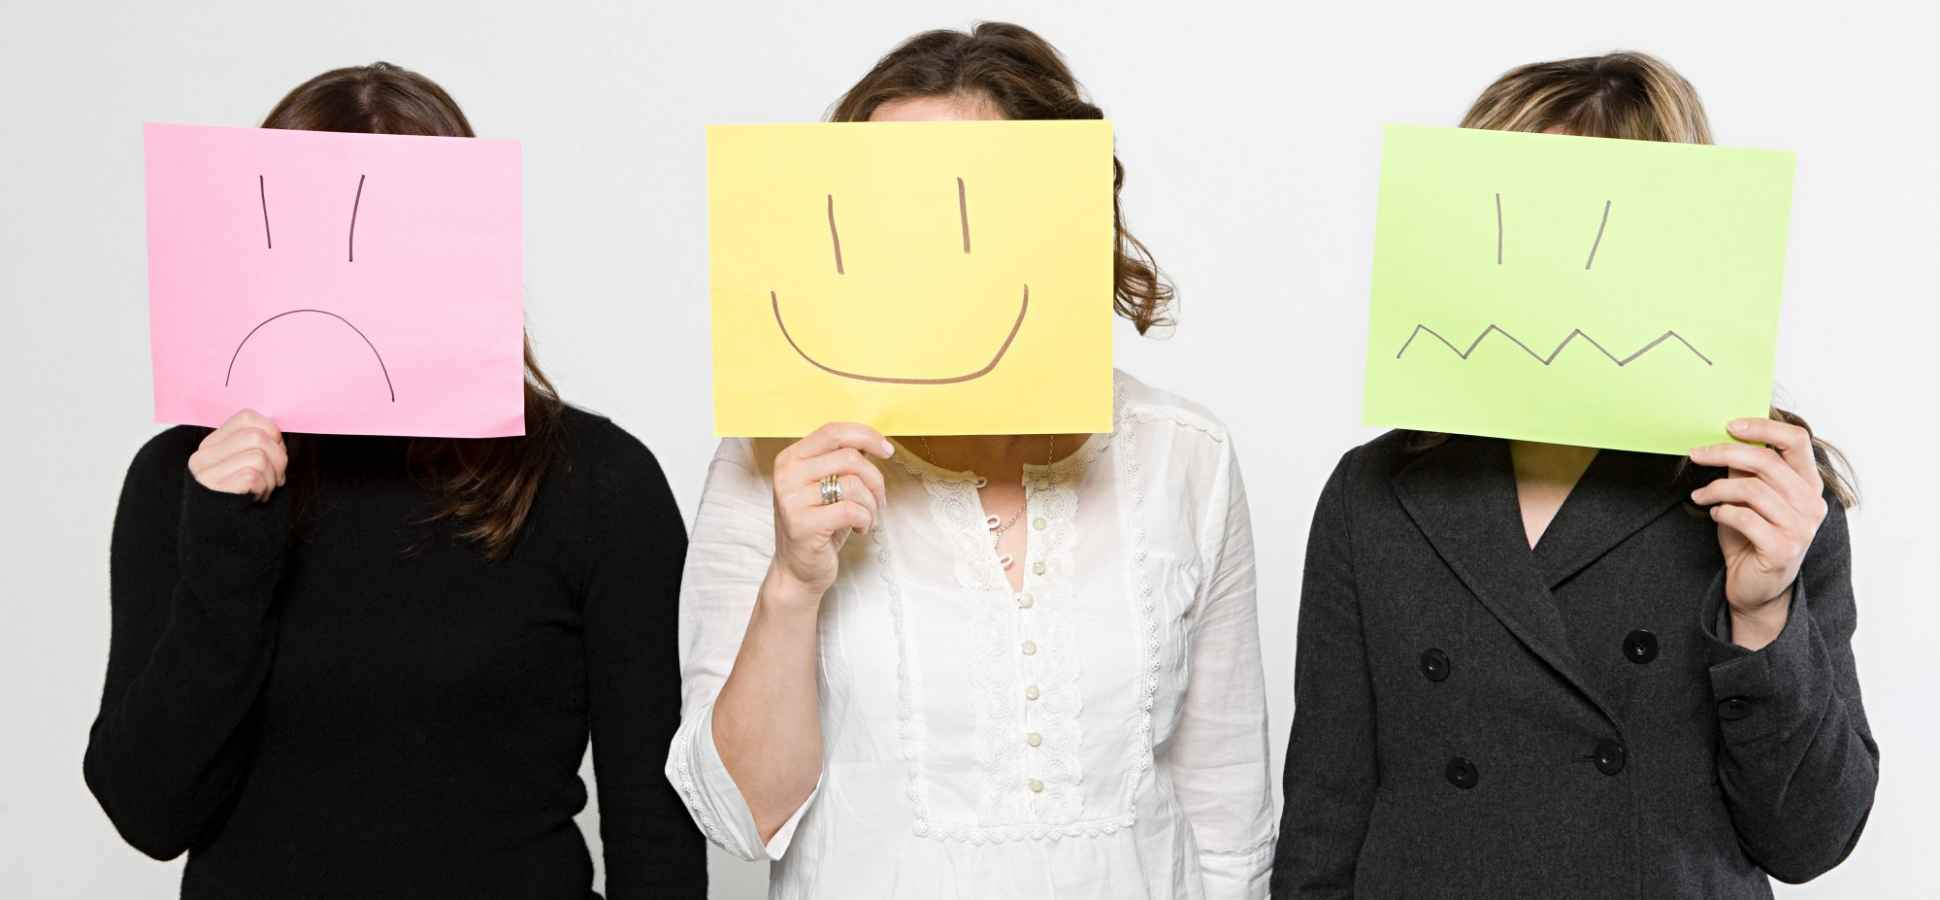 6 Simple Ways to Talk Your Brain Out of Negativity